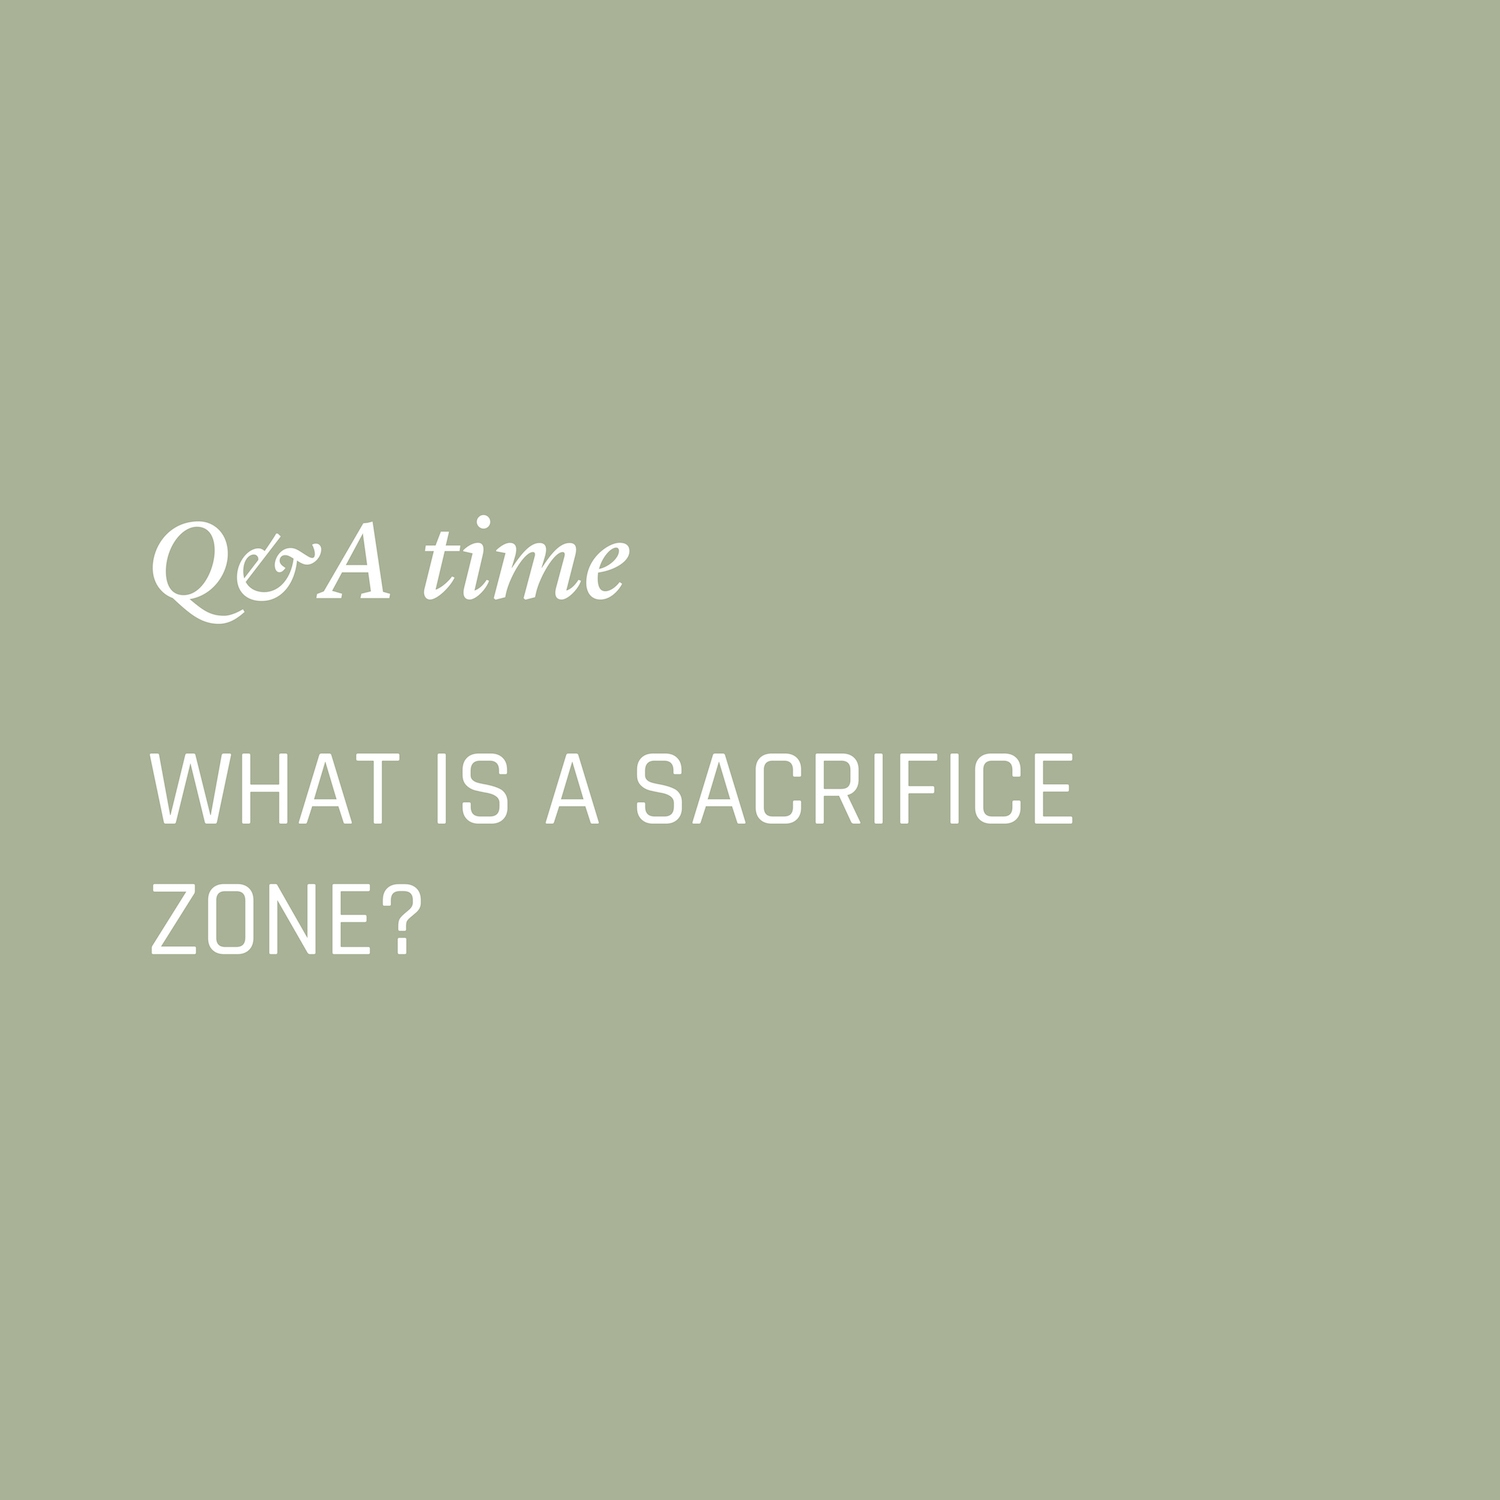 What is a sacrifice zone? Environment Environmental Questions FAQs Frequently Asked Questions Climate Change Plastics Oceans Animals Nowhere & Everywhere